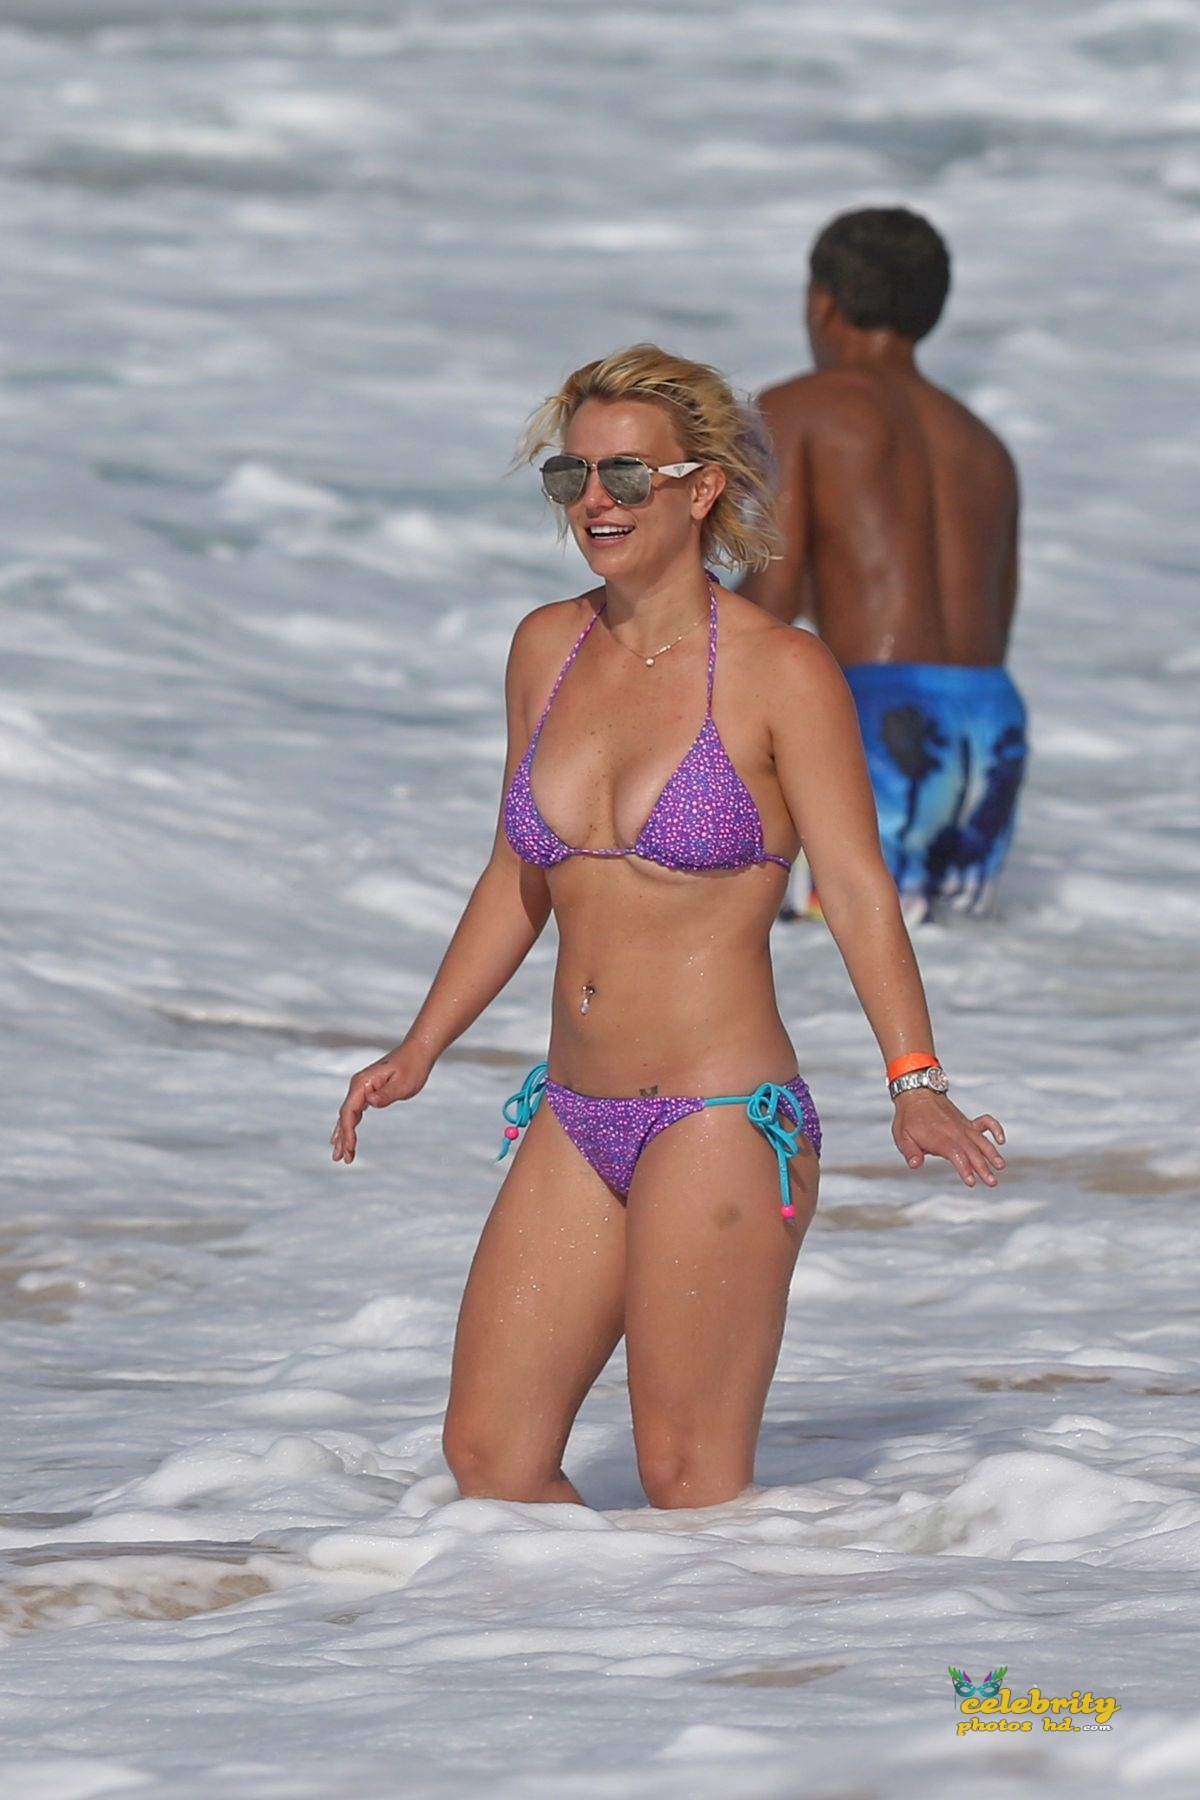 britney-spears-in-bikini-at-a-beach-in-hawaii-07-23-2015_2